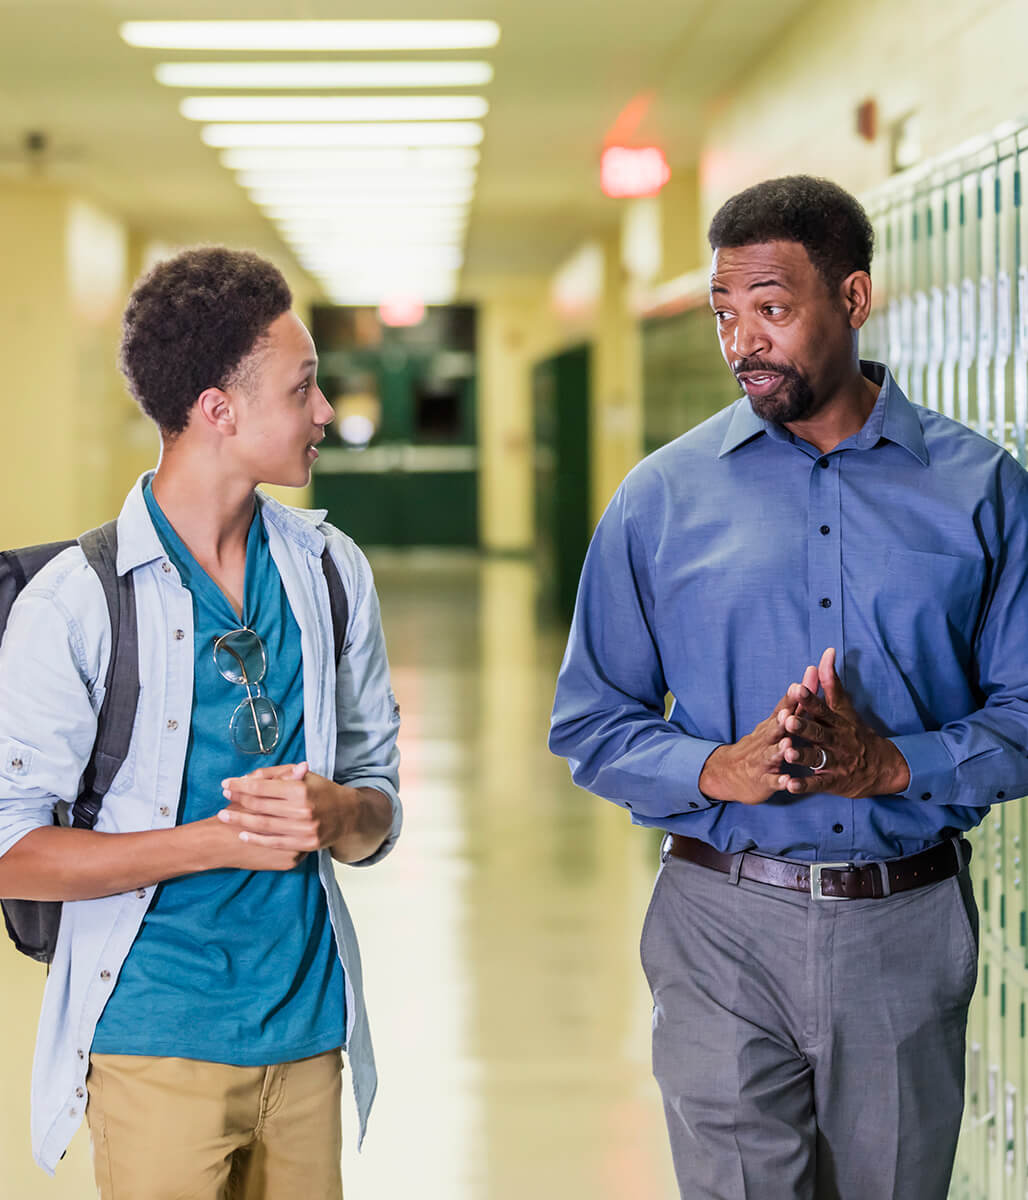 A teenage boy and adult man, likely his teacher, are walking down the hall of a high school, with lockers to the right. They are talking to each other in a respectful manner.